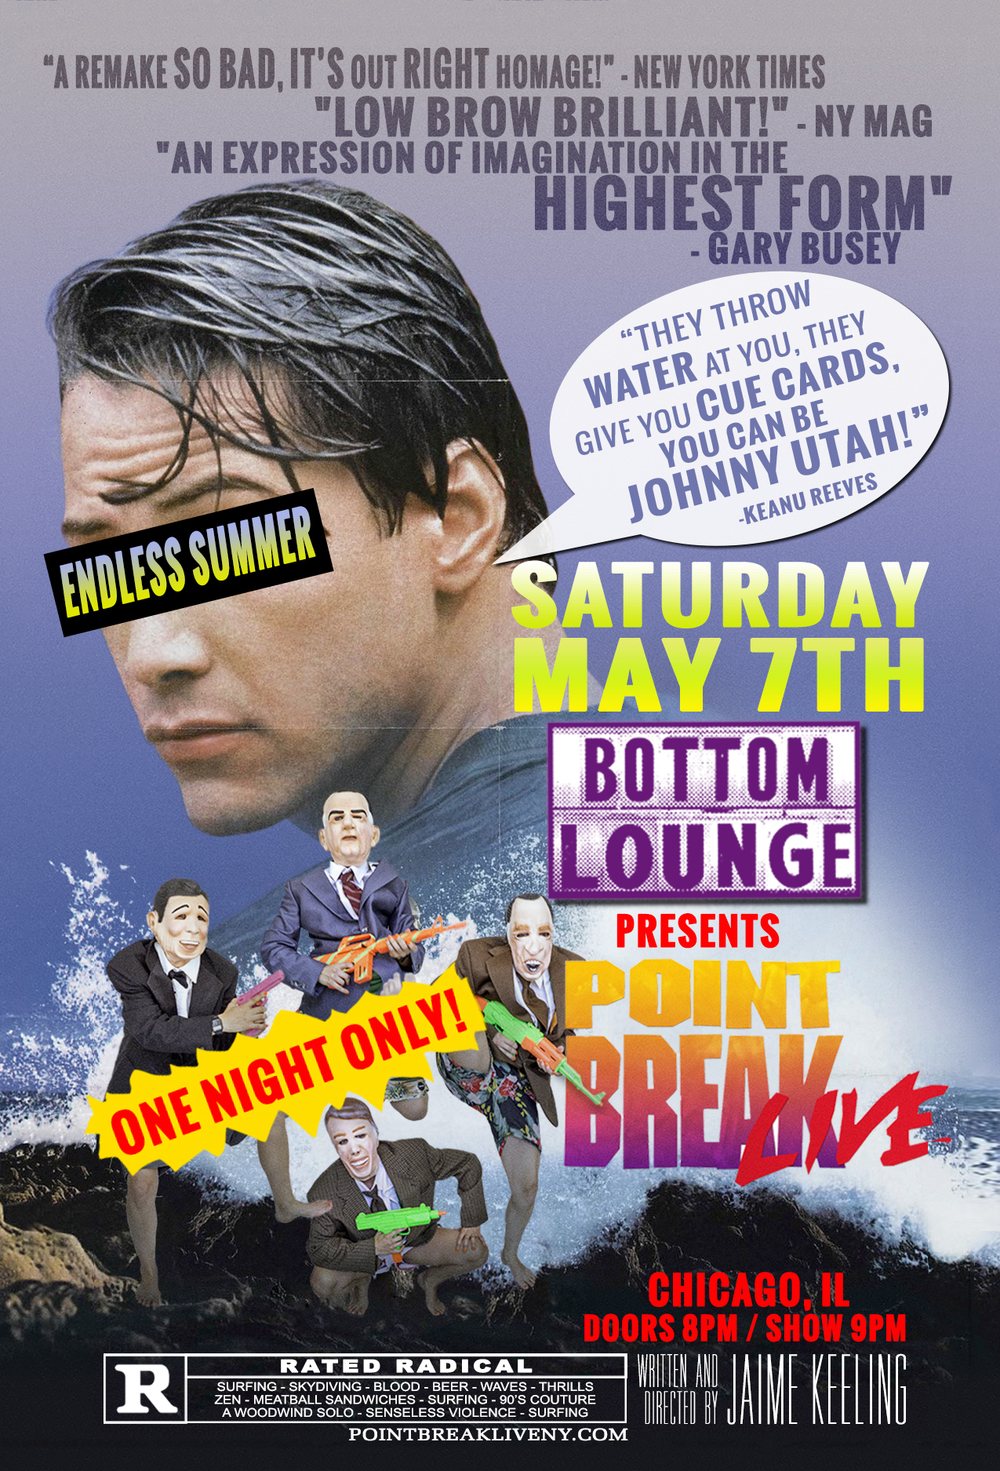 05_07_16_Bottom-Lounge_PBL!_Poster_GotPrint.jpg